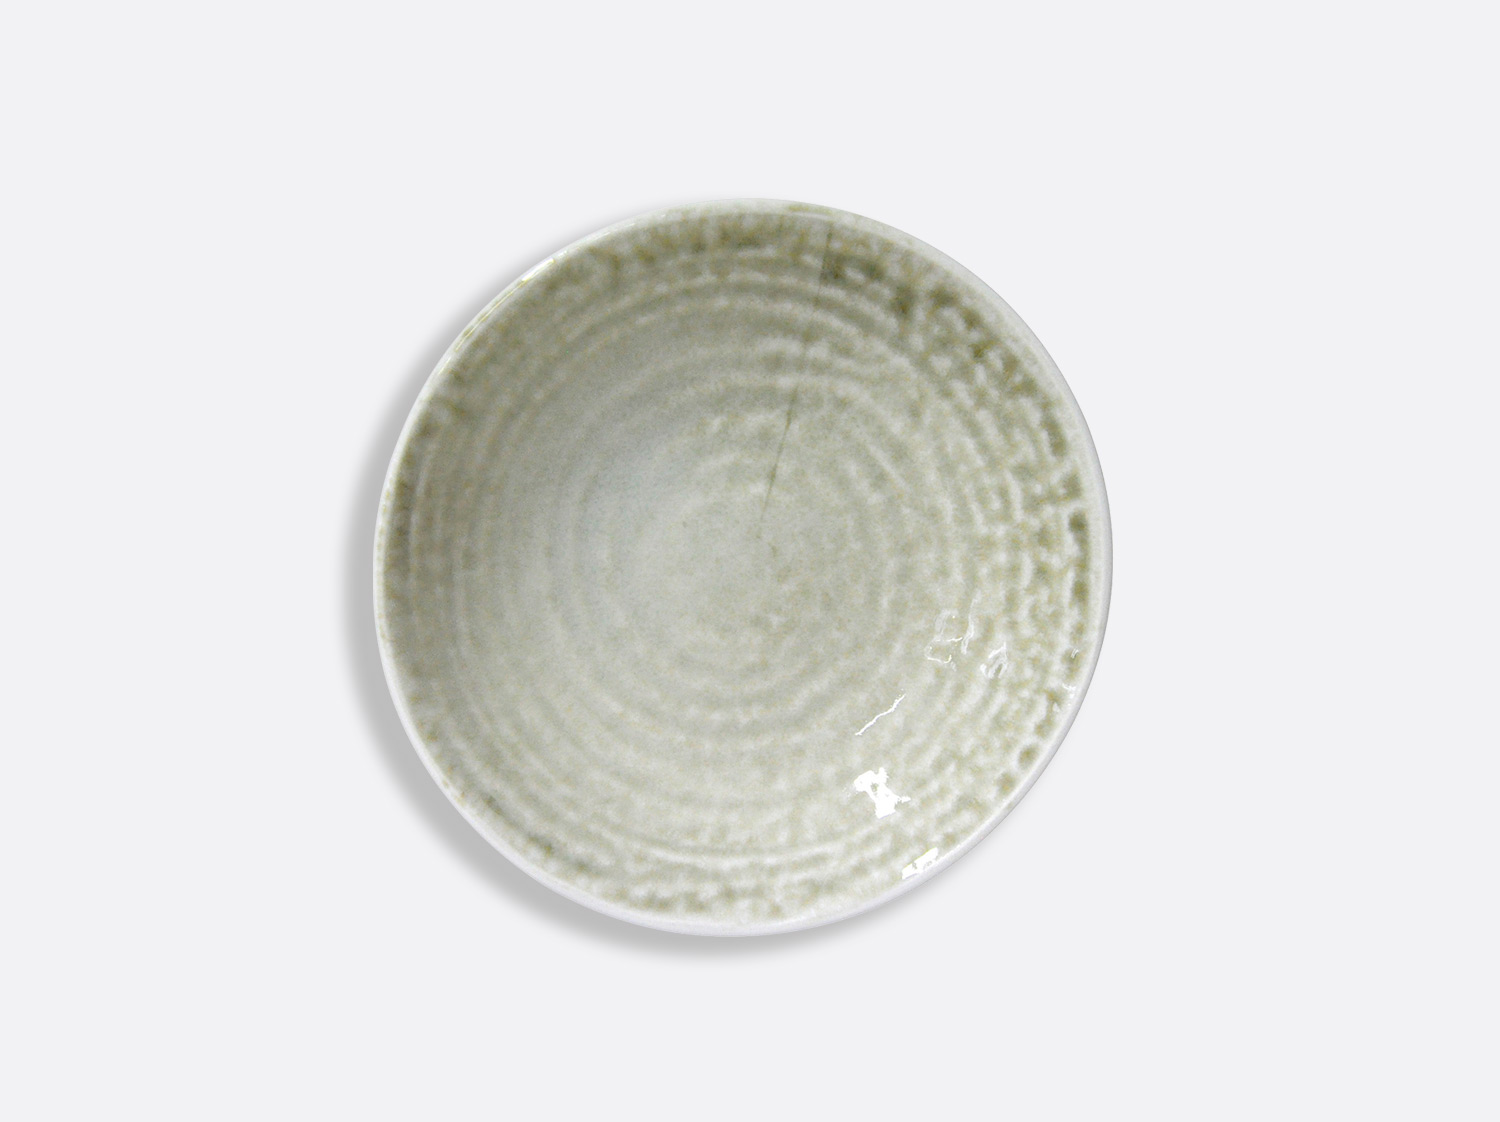 Assiette Celsius Celadon 16 cm en porcelaine de la collection CELADON Bernardaud